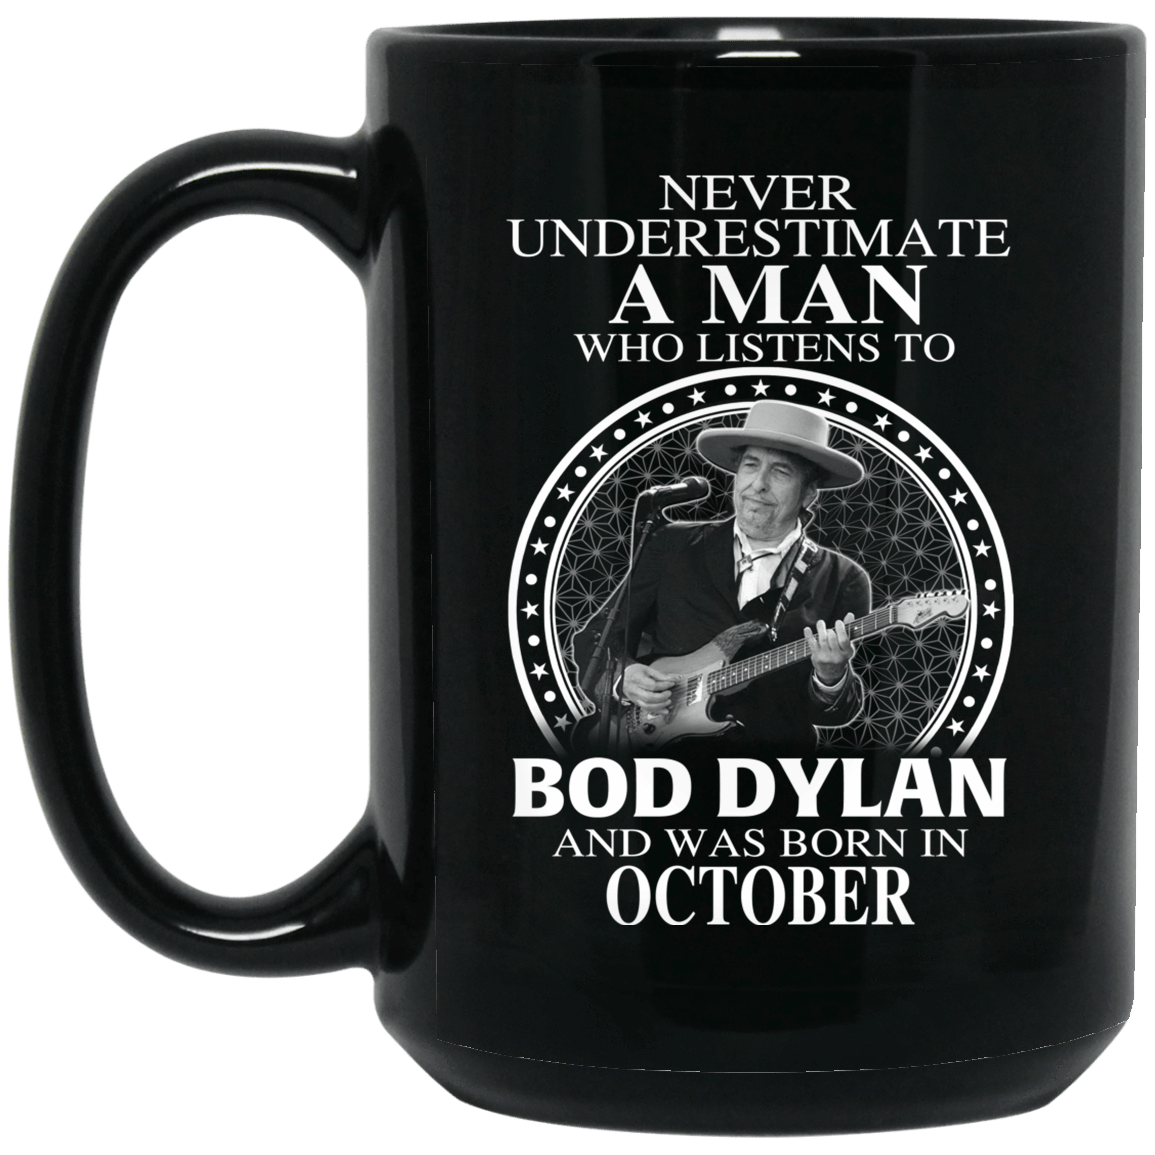 A Man Who Listens To Bob Dylan And Was Born In October Mug 1066-10182-76153596-49311 - Tee Ript